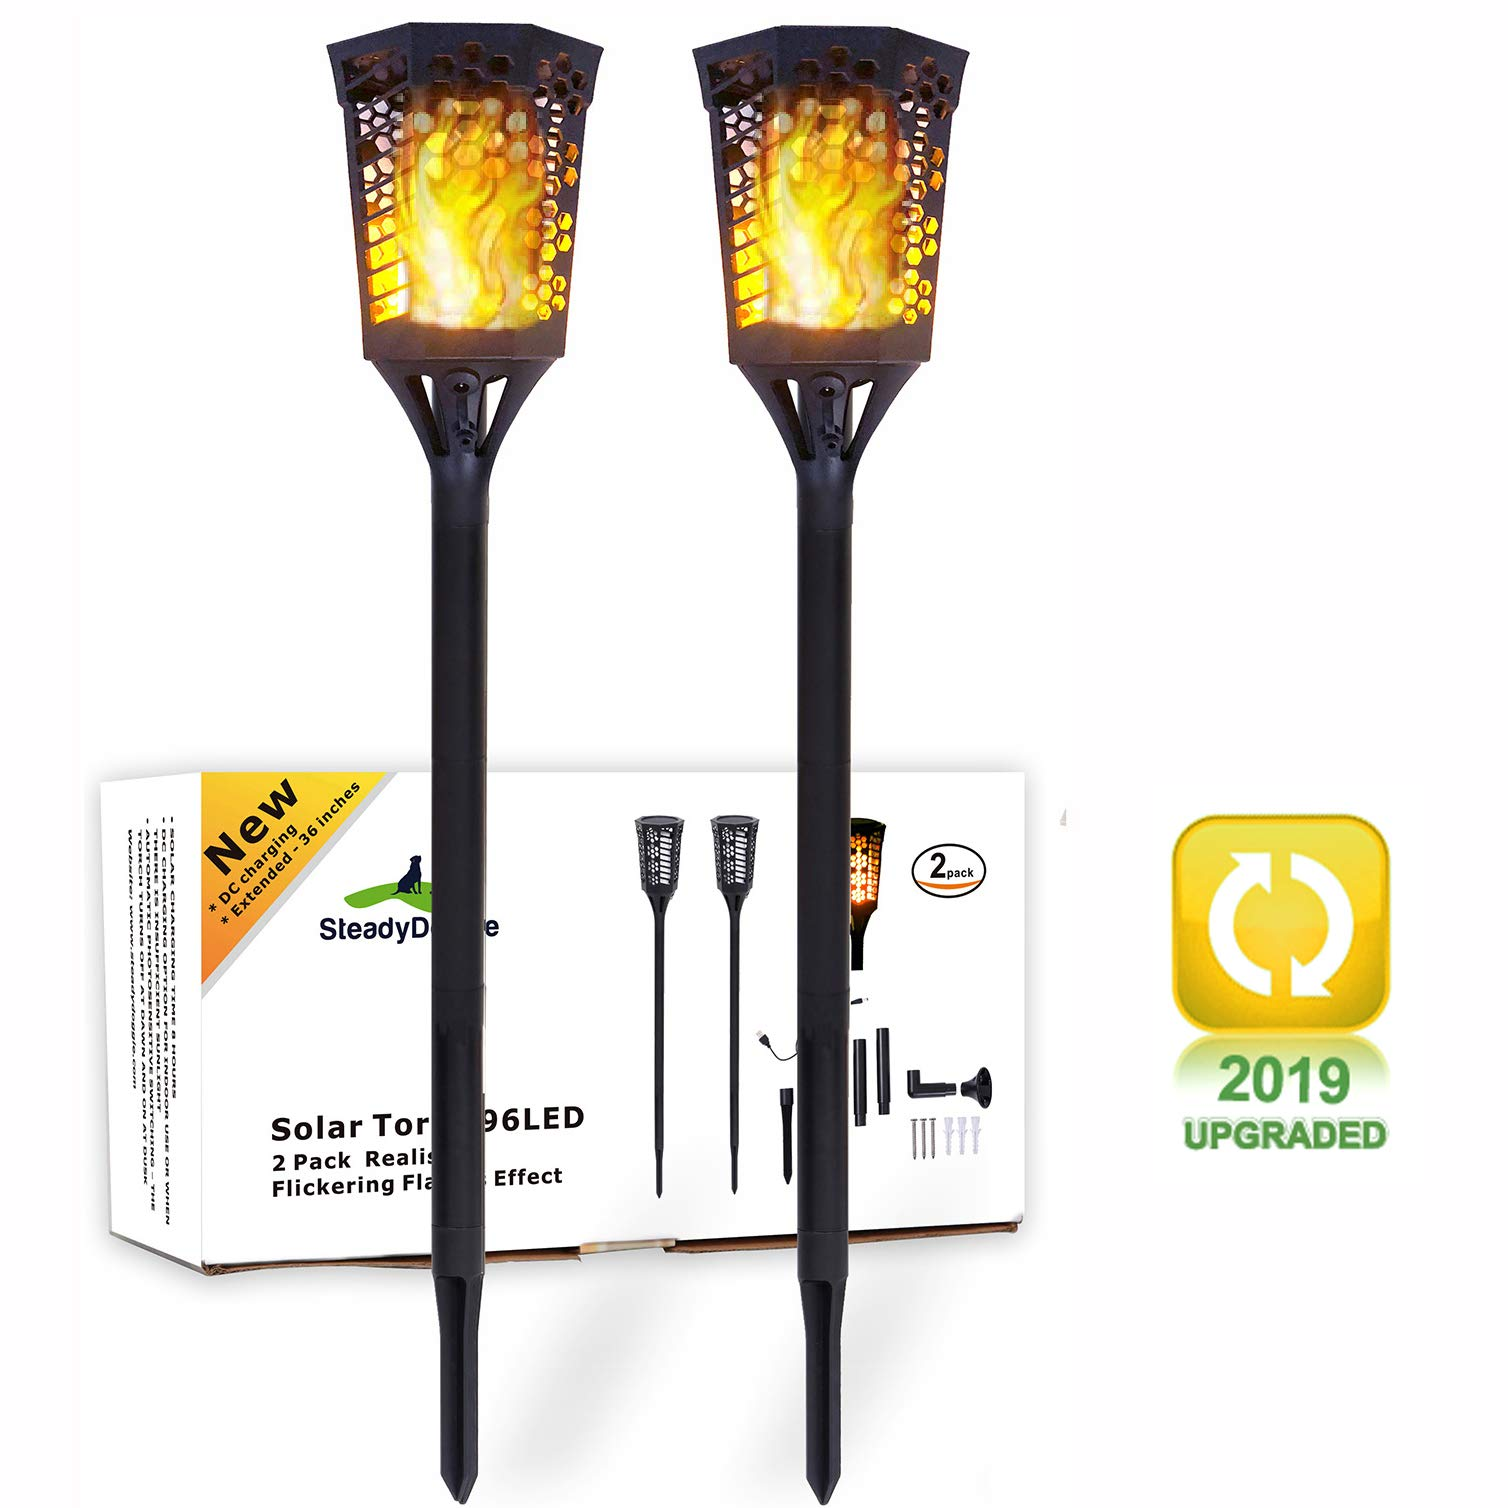 SteadyDoggie Solar Torch Landscaping Light Kit 2 Pack| Flickering Flames Torch Lights | Upgraded with USB Charging | Solar Tiki Torches Outdoor | Dusk to Dawn Lighting with Auto On/Off Switch